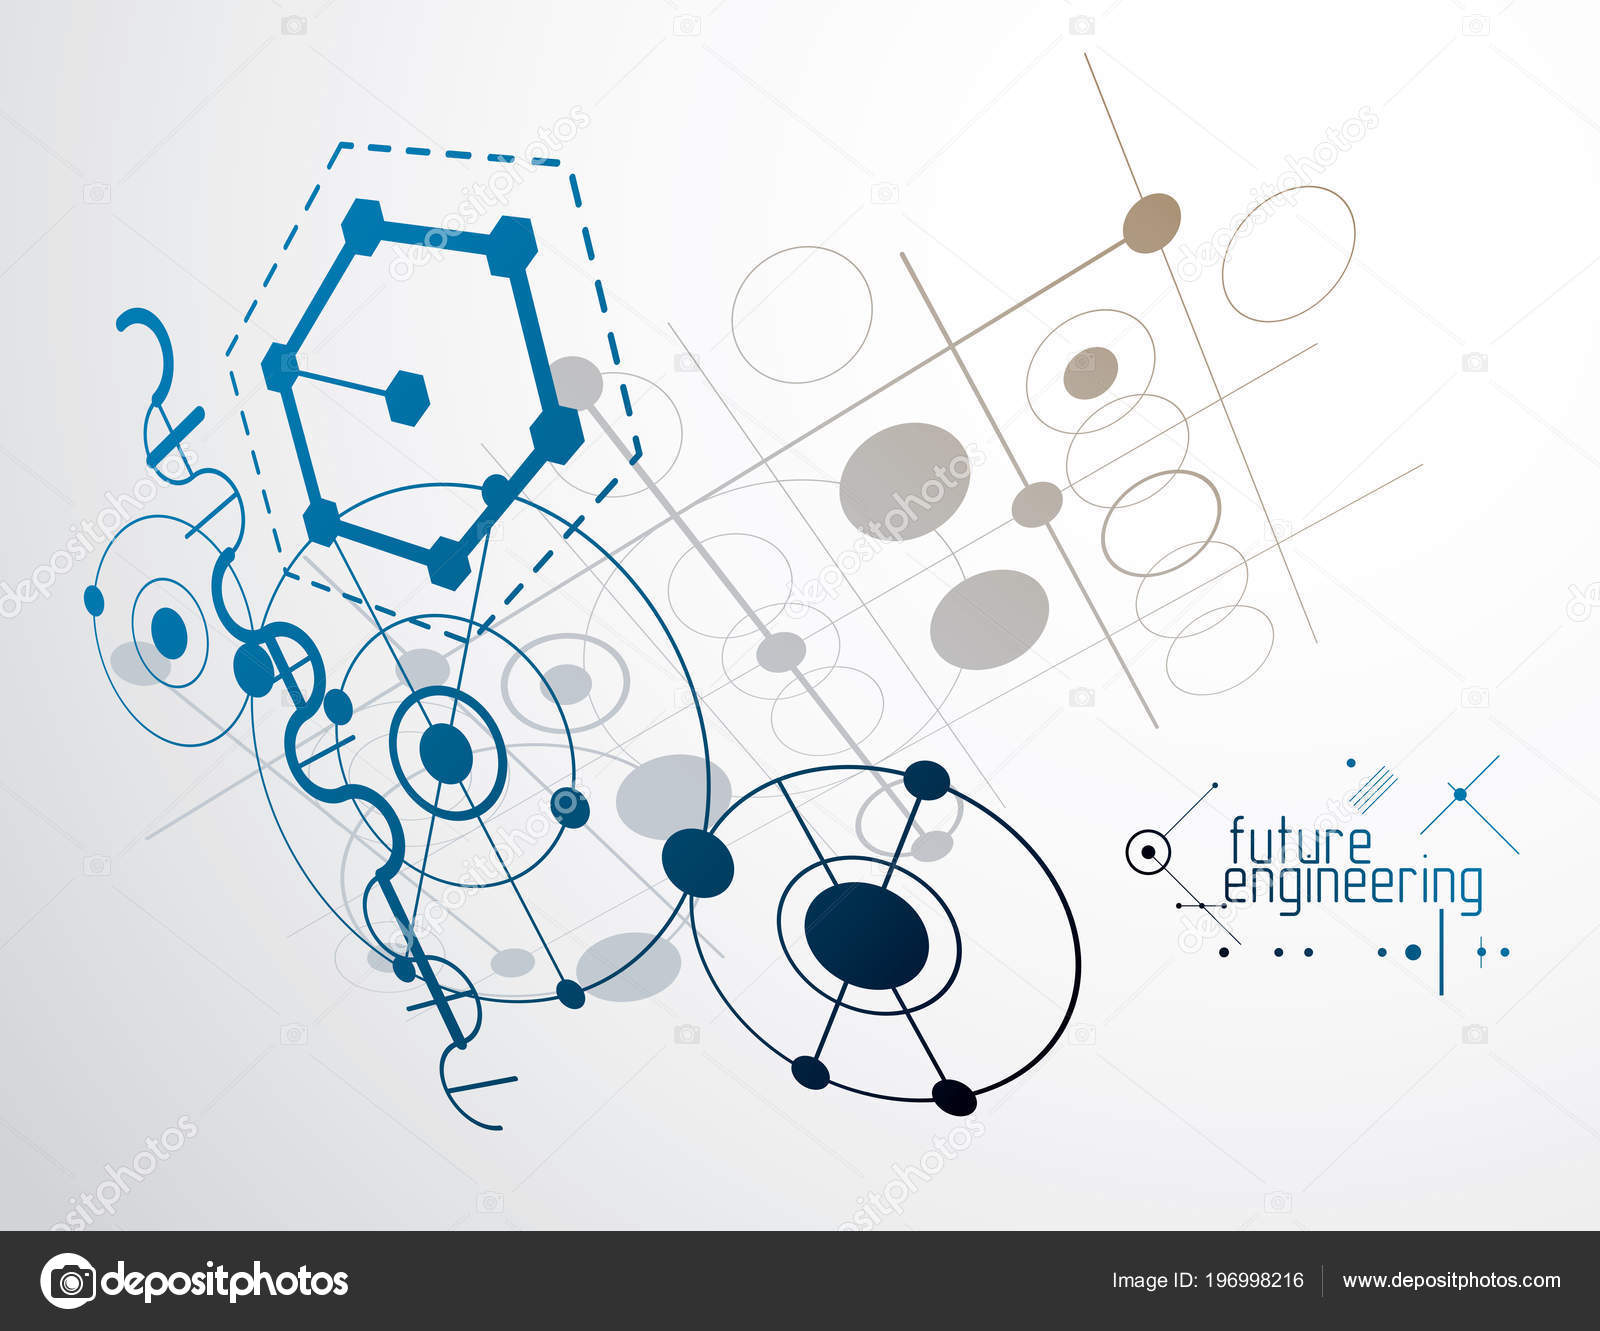 Engineering Technological Wallpaper Made Hexagons Circles Lines Stock Vector